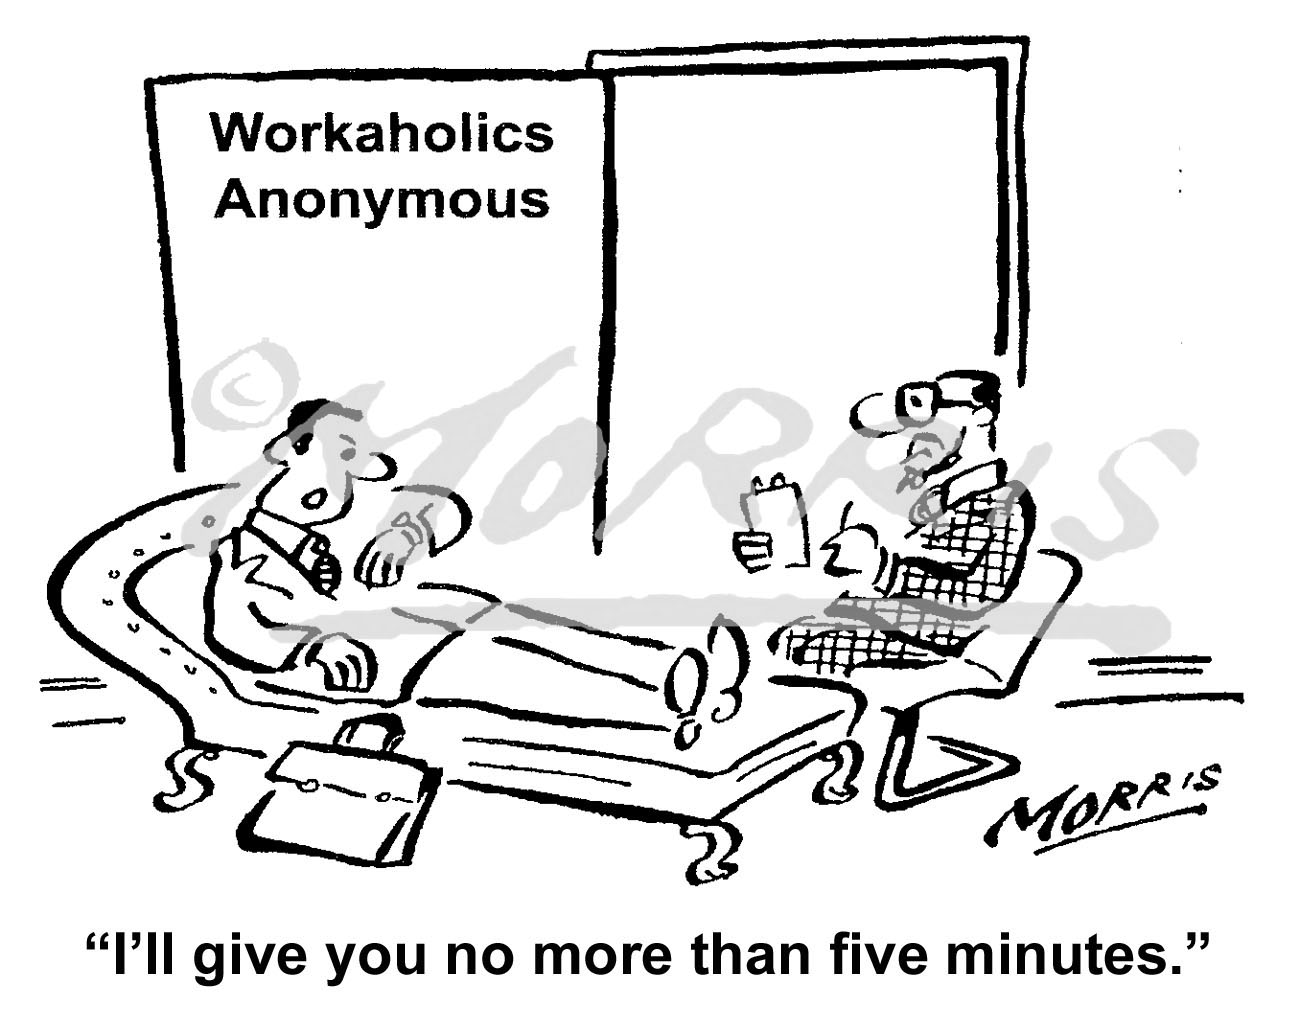 Workaholic business cartoon – Ref: 6177bw